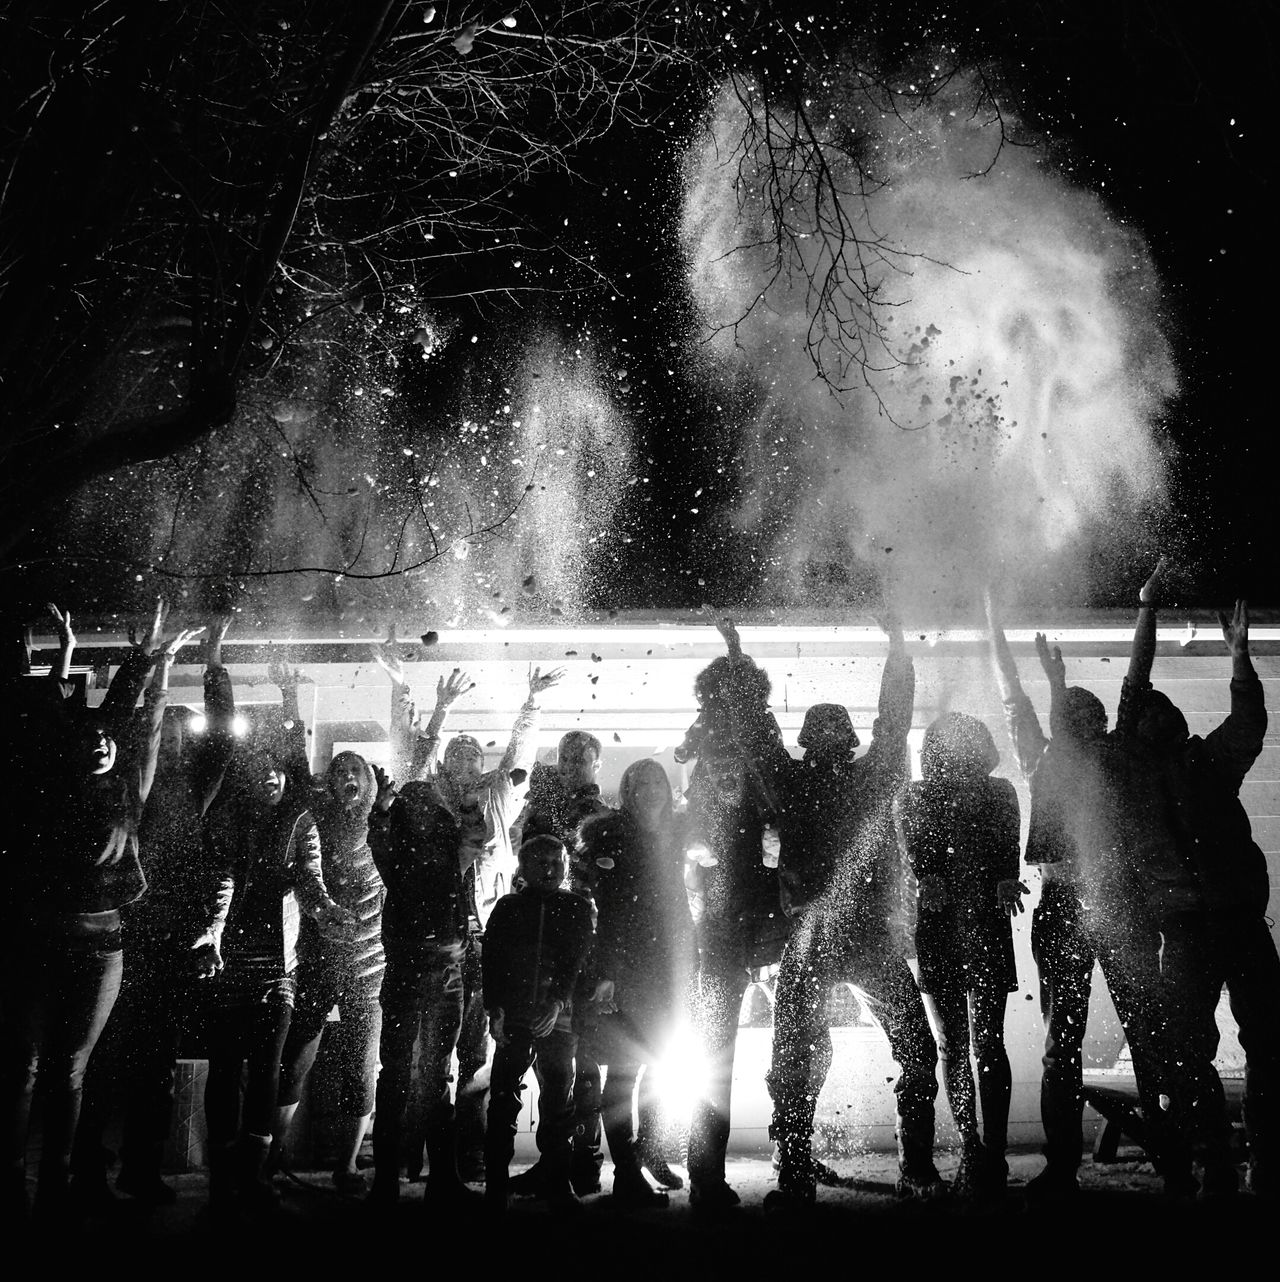 My Year My View Celebration Large Group Of People Outdoors Performance Celebration Event Celebrating Joy Joyful Moments Excitement Real People Group Photo Snow Backlit Flash Photography Bw Photography Laughing People Laughing Out Loud Togetherness Nighttime Friendship Snow Sports